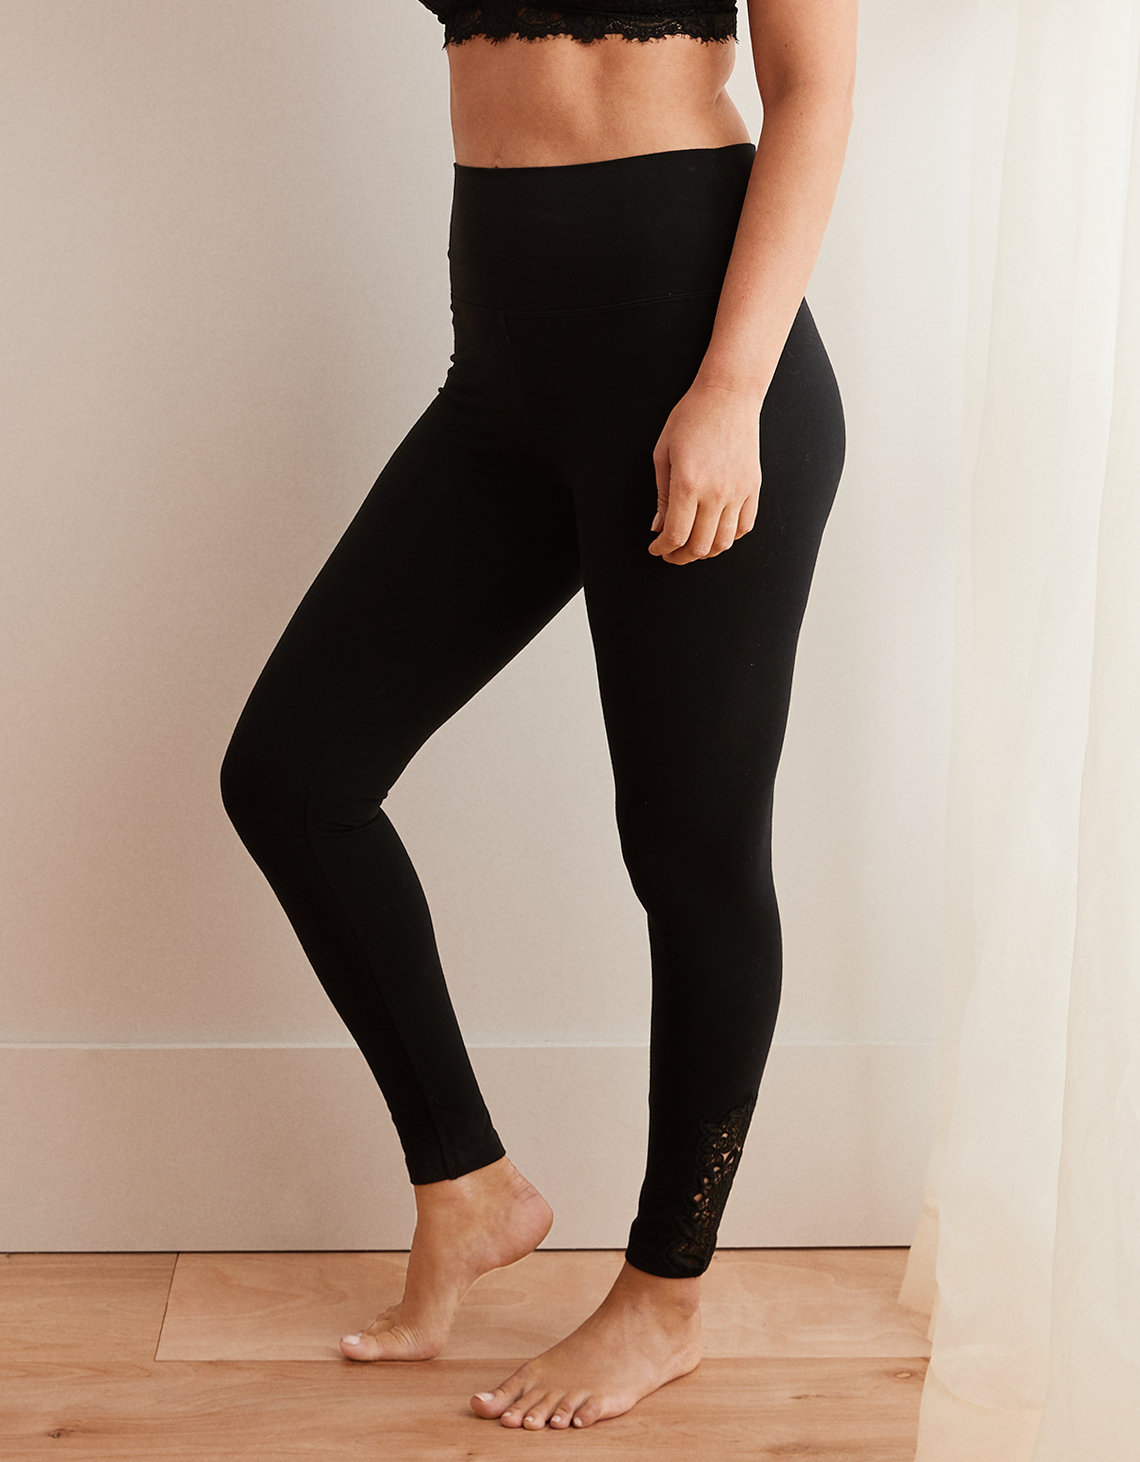 17a1730e7c4ad6 Aerie Chill High Waisted Legging, True Black | American Eagle Outfitters